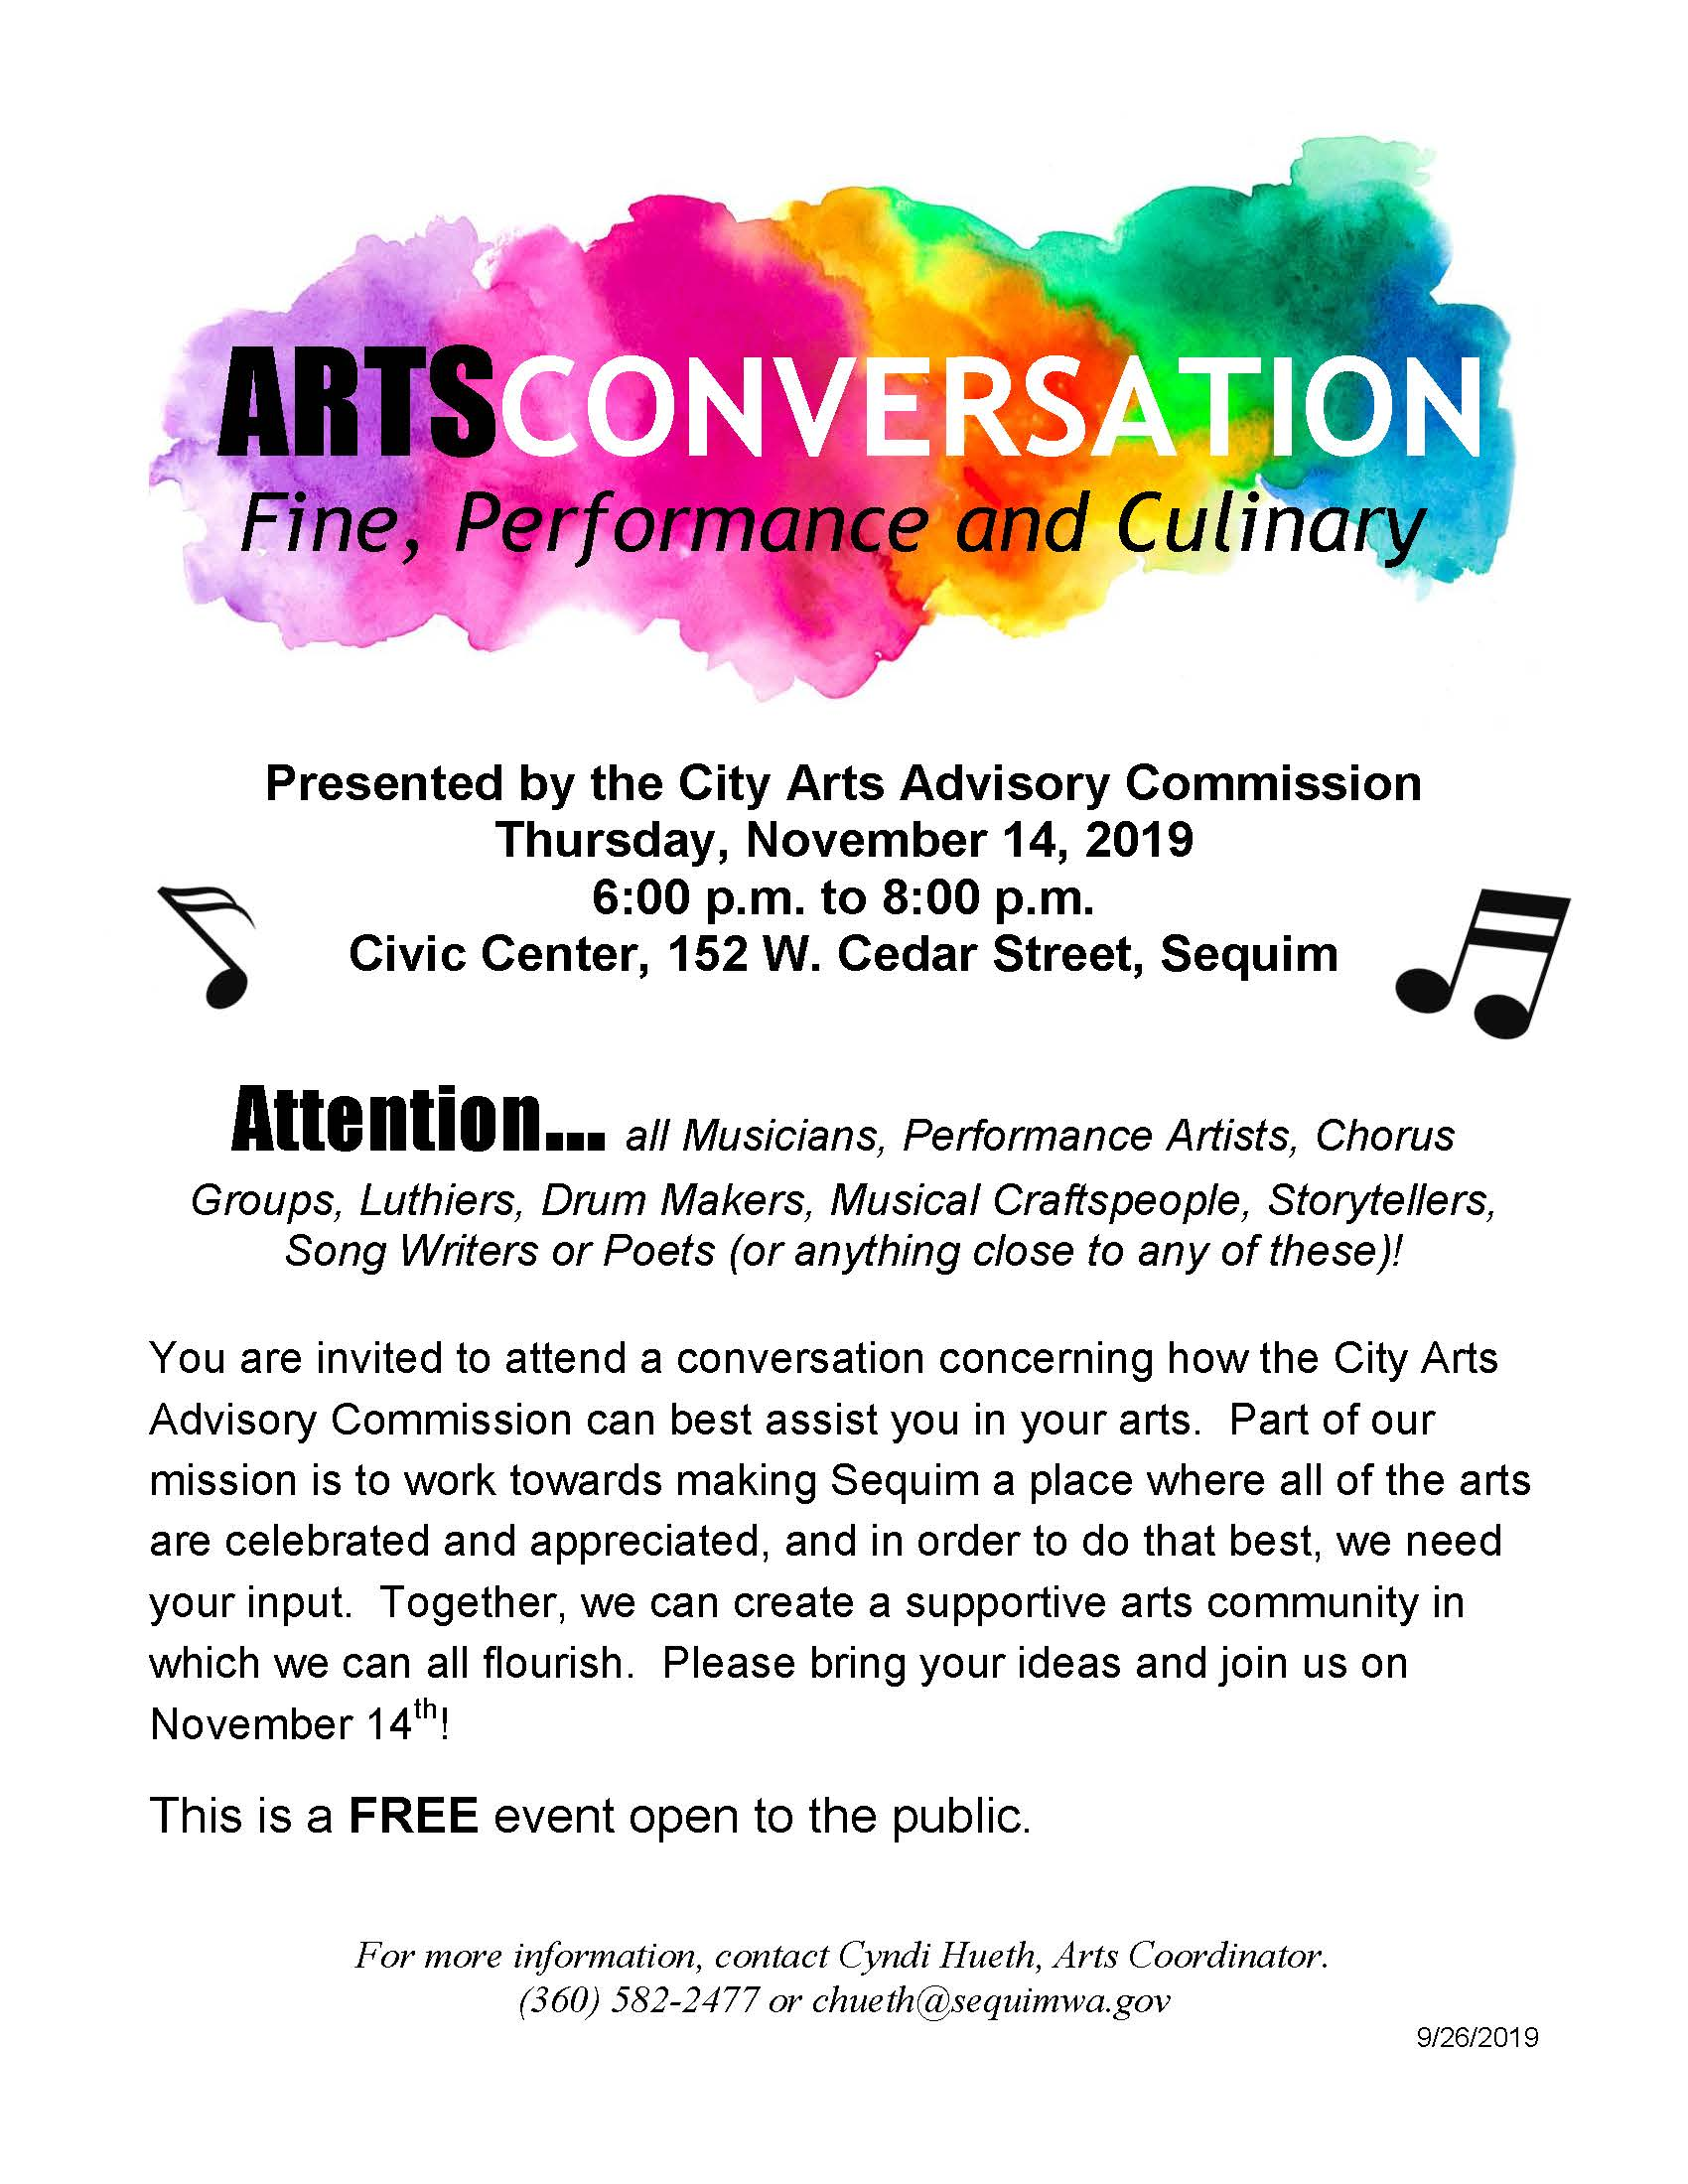 Arts Conversation 11142019 flyer